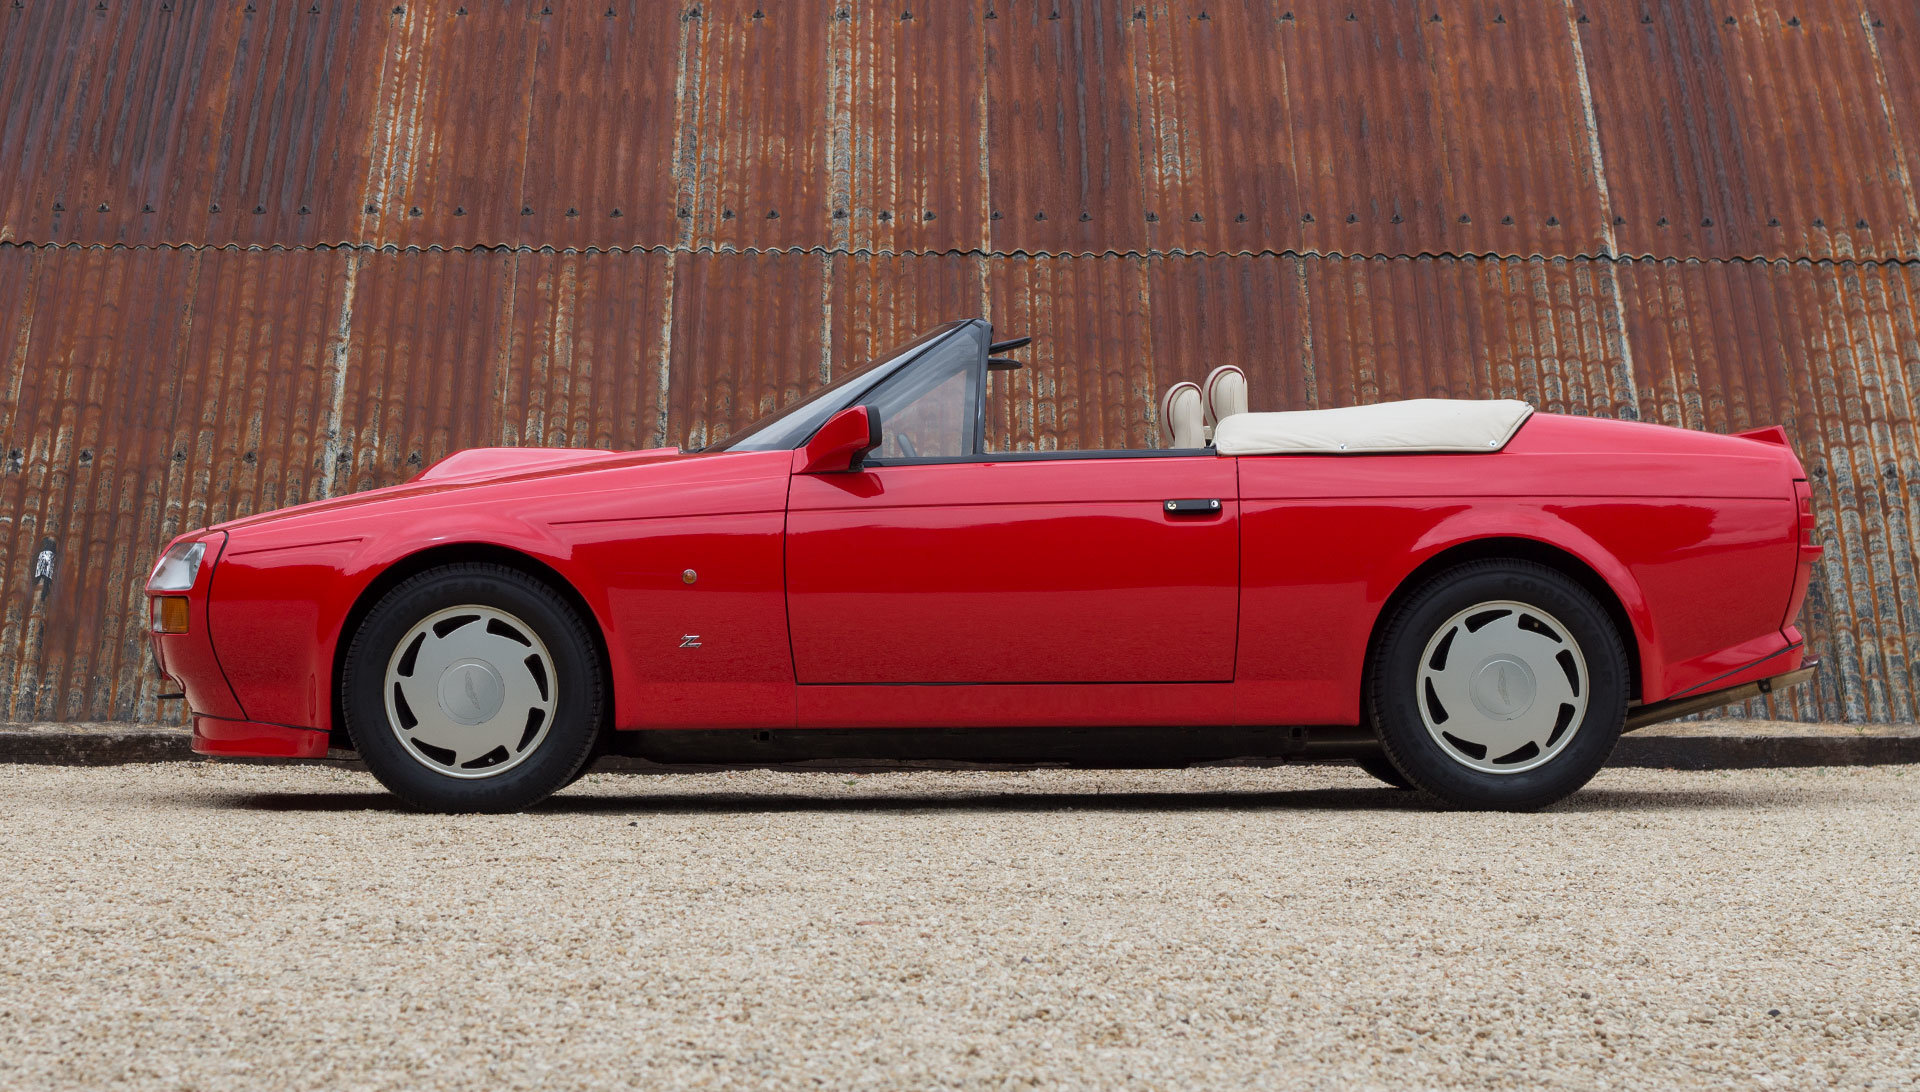 1989 Aston Martin V8 Vantage Volante Zagato 6.3 Litre For Sale (picture 2 of 24)